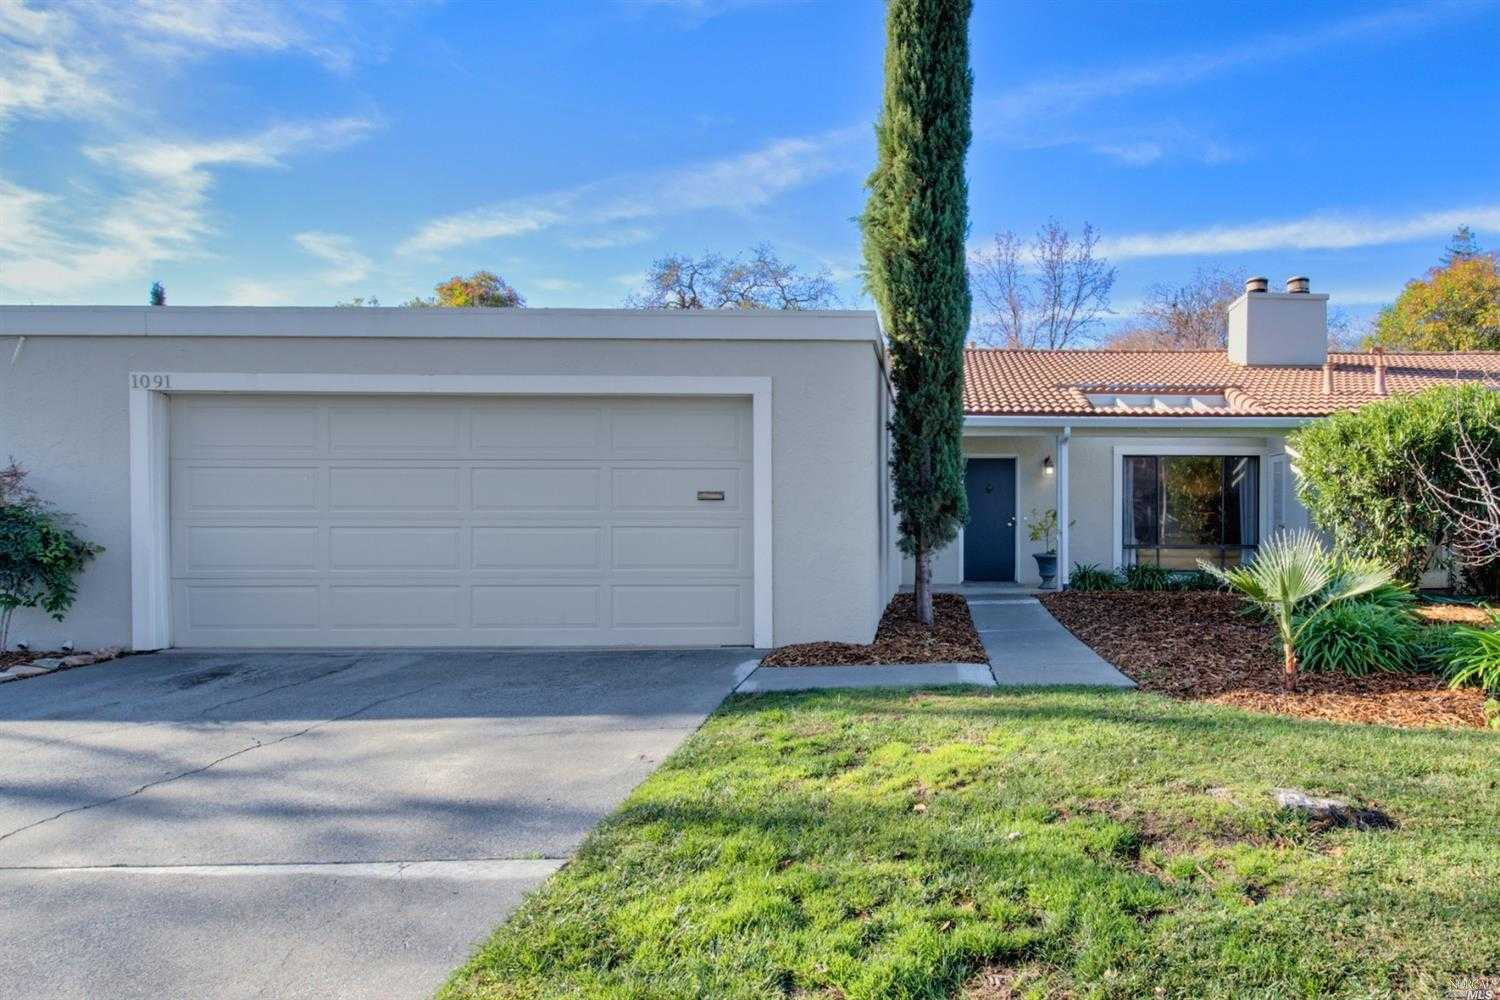 $775,000 - 3Br/2Ba -  for Sale in St. Helena